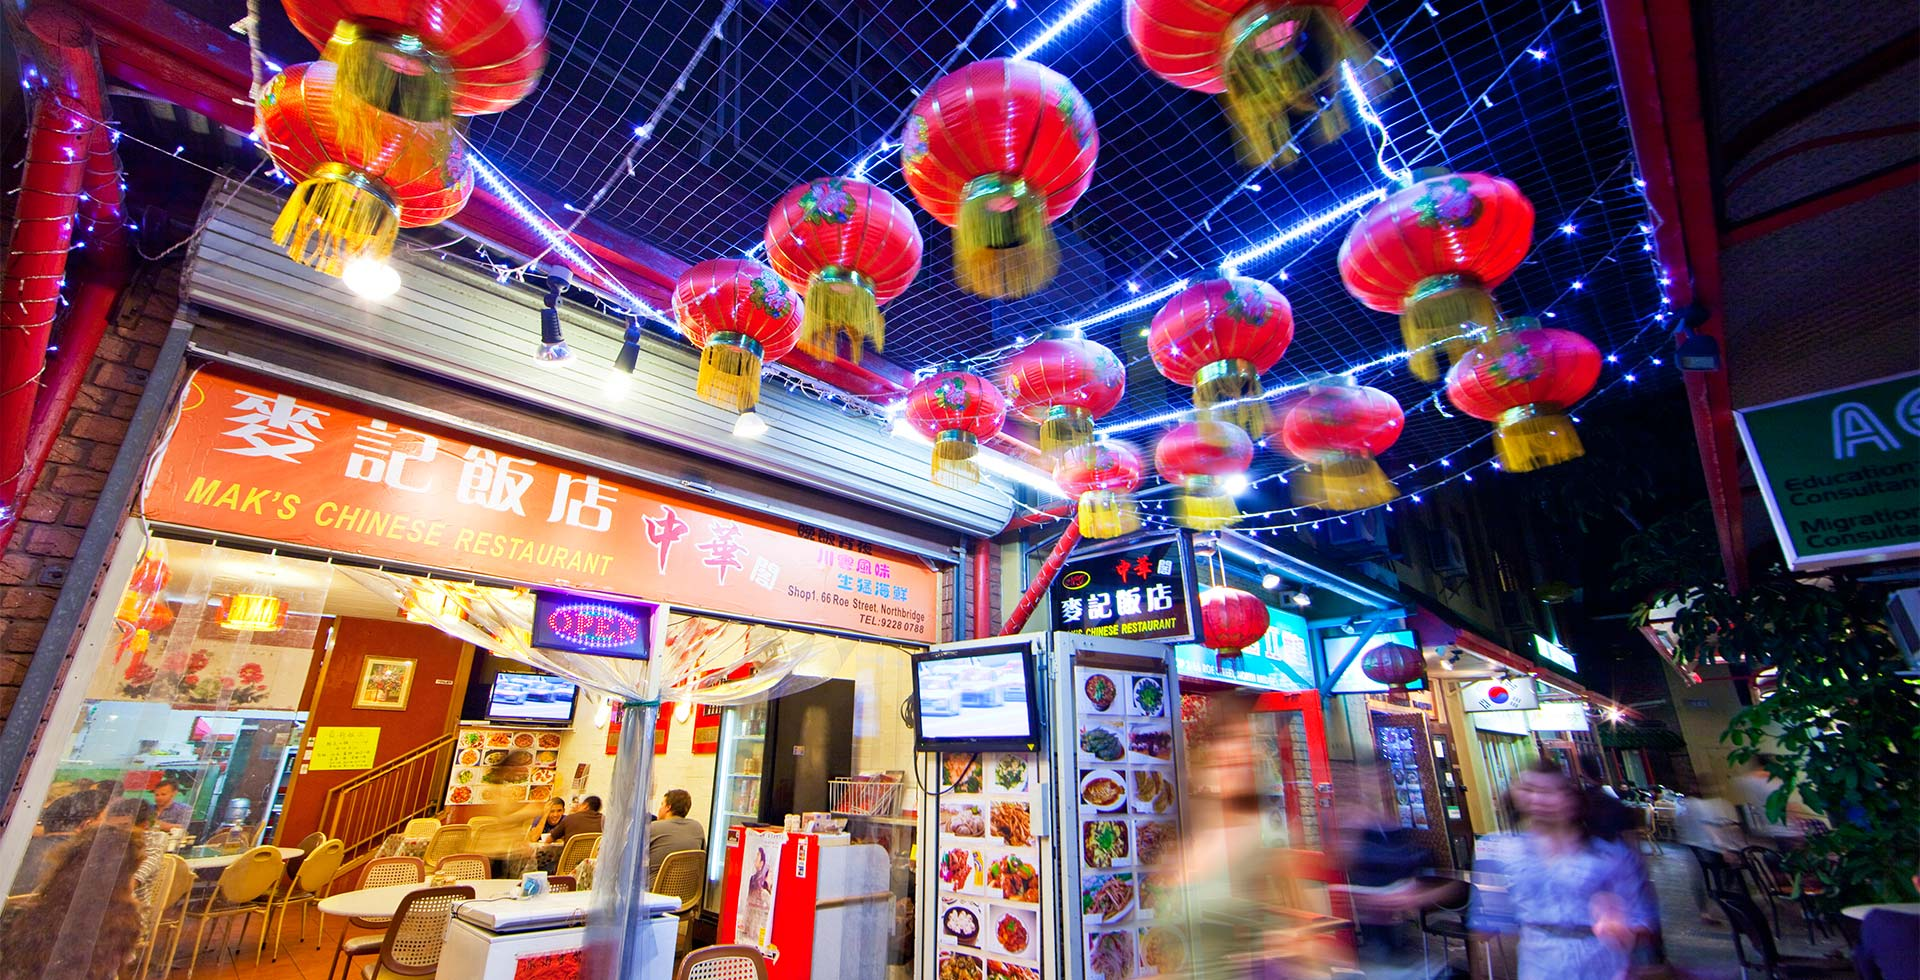 Immerse yourself in the Chinese community of Perth City